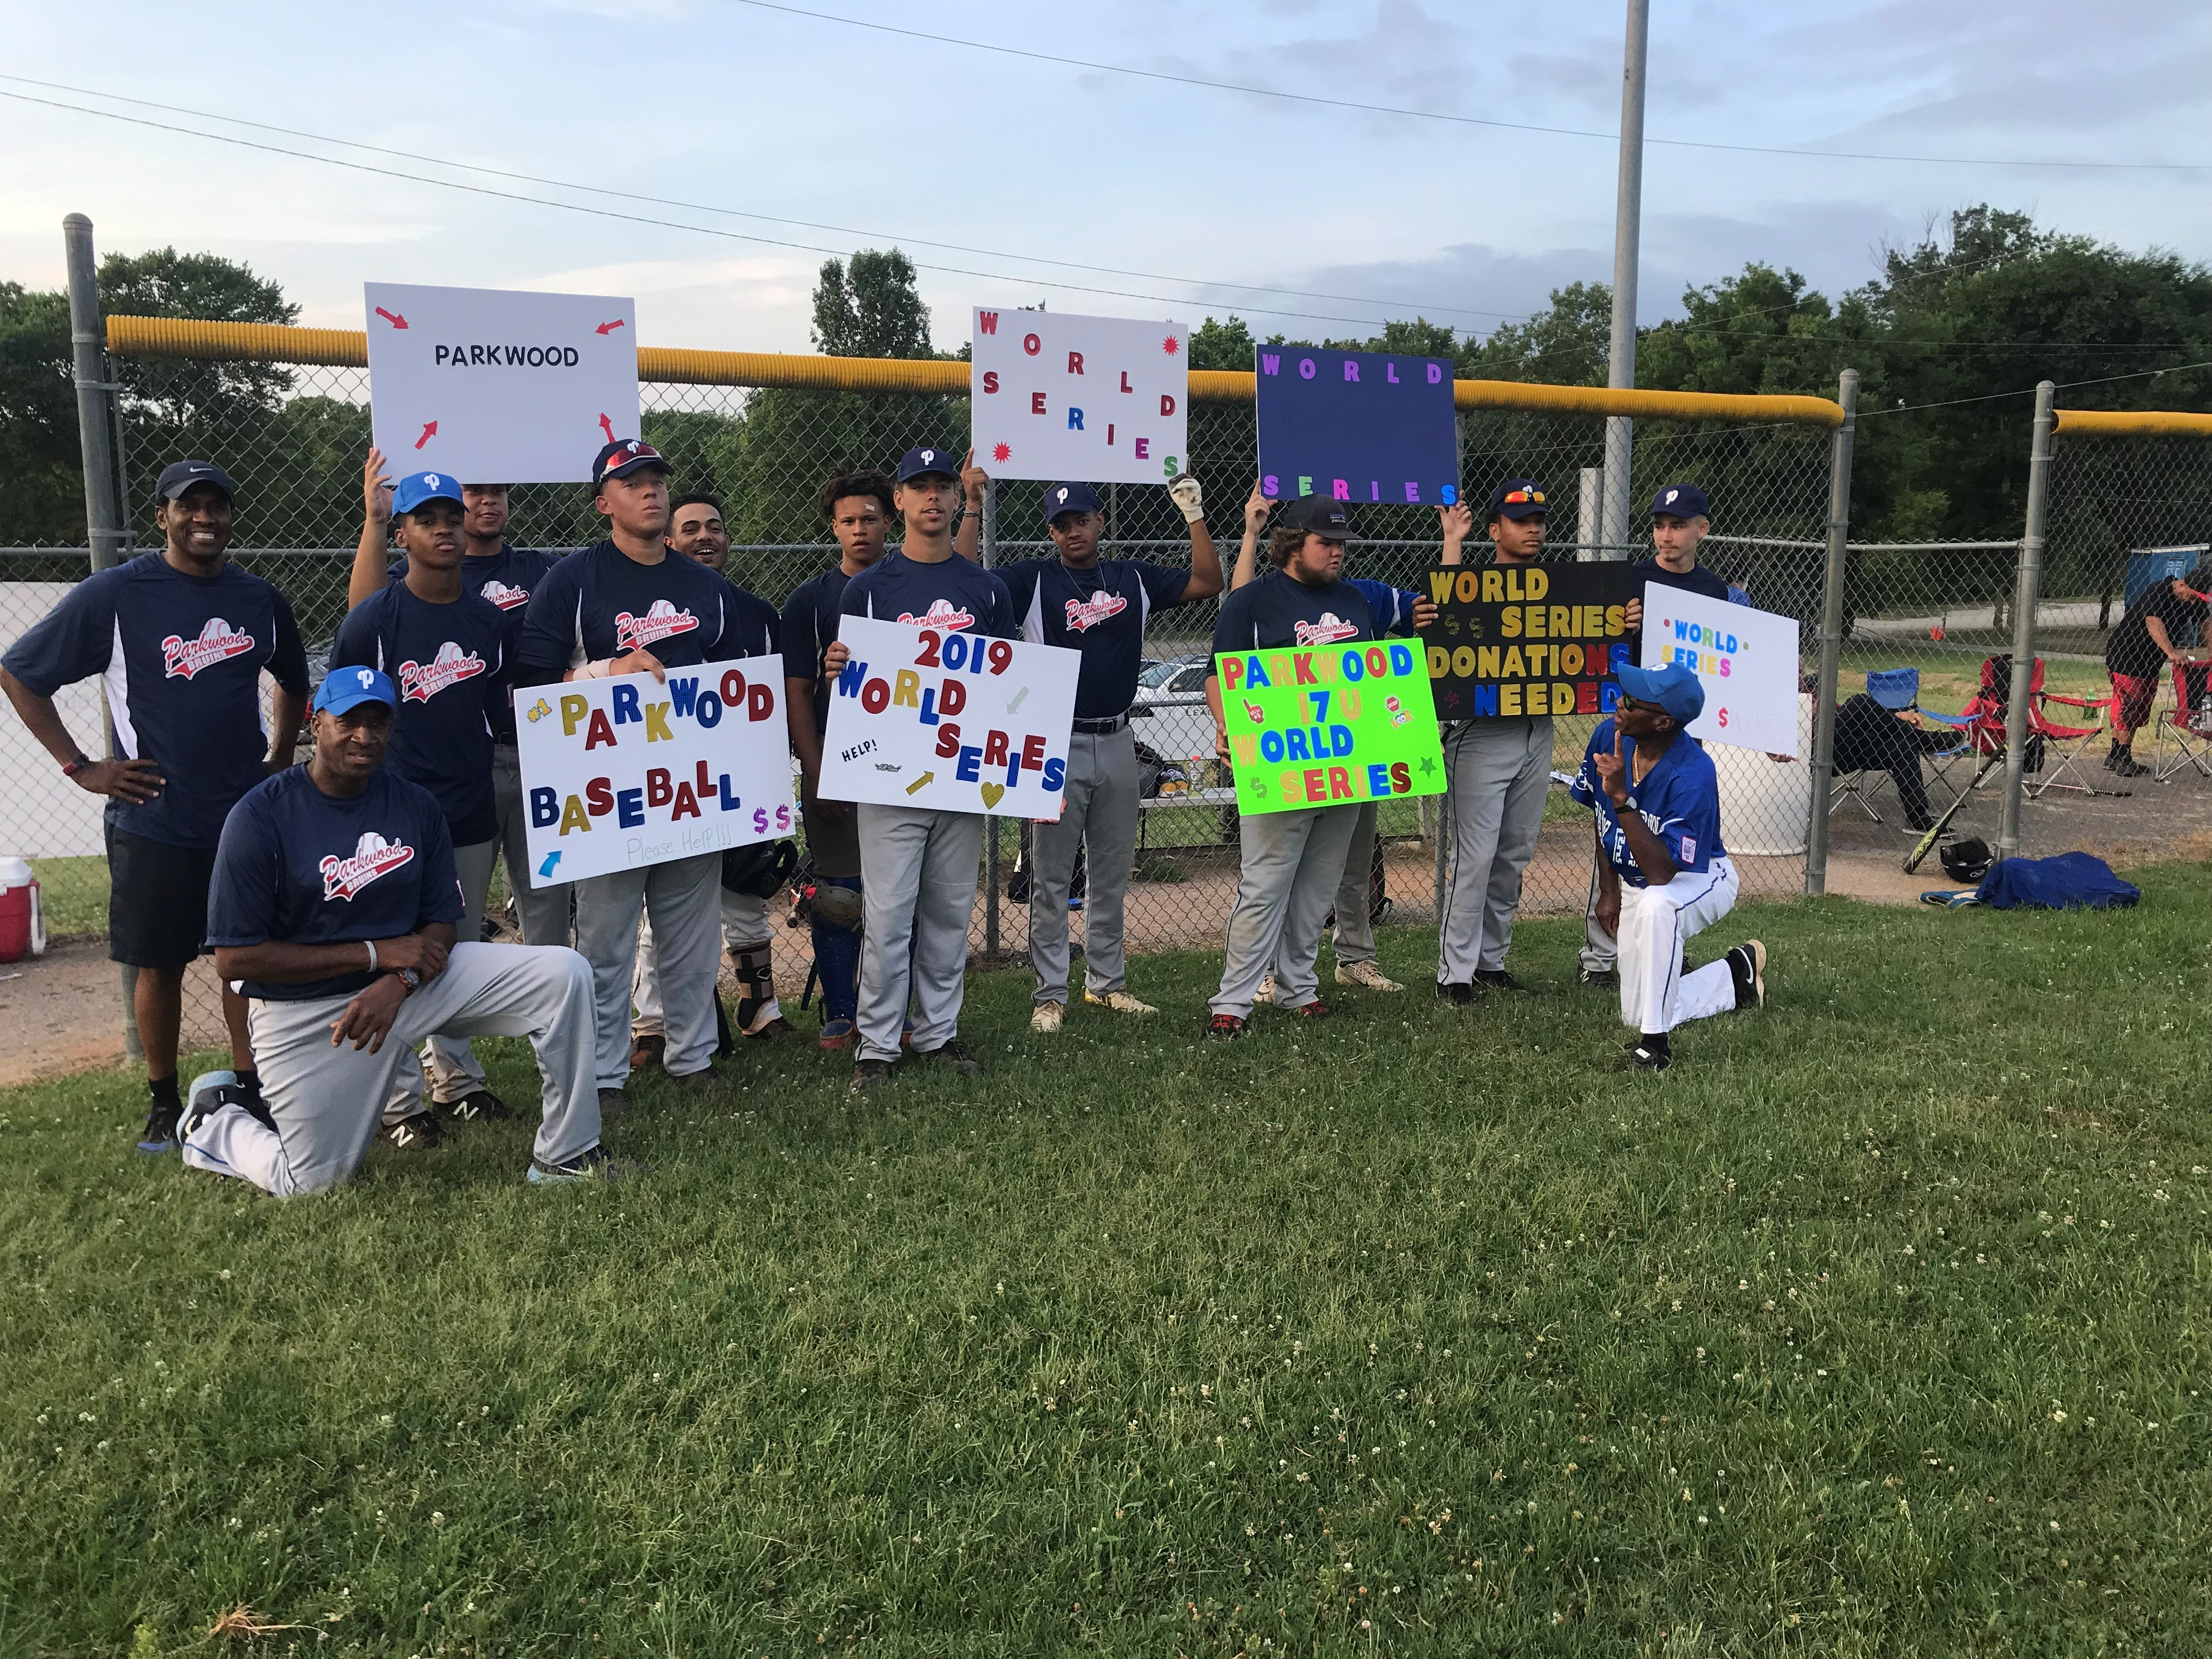 Inner-city baseball team is heads to world series for second time in